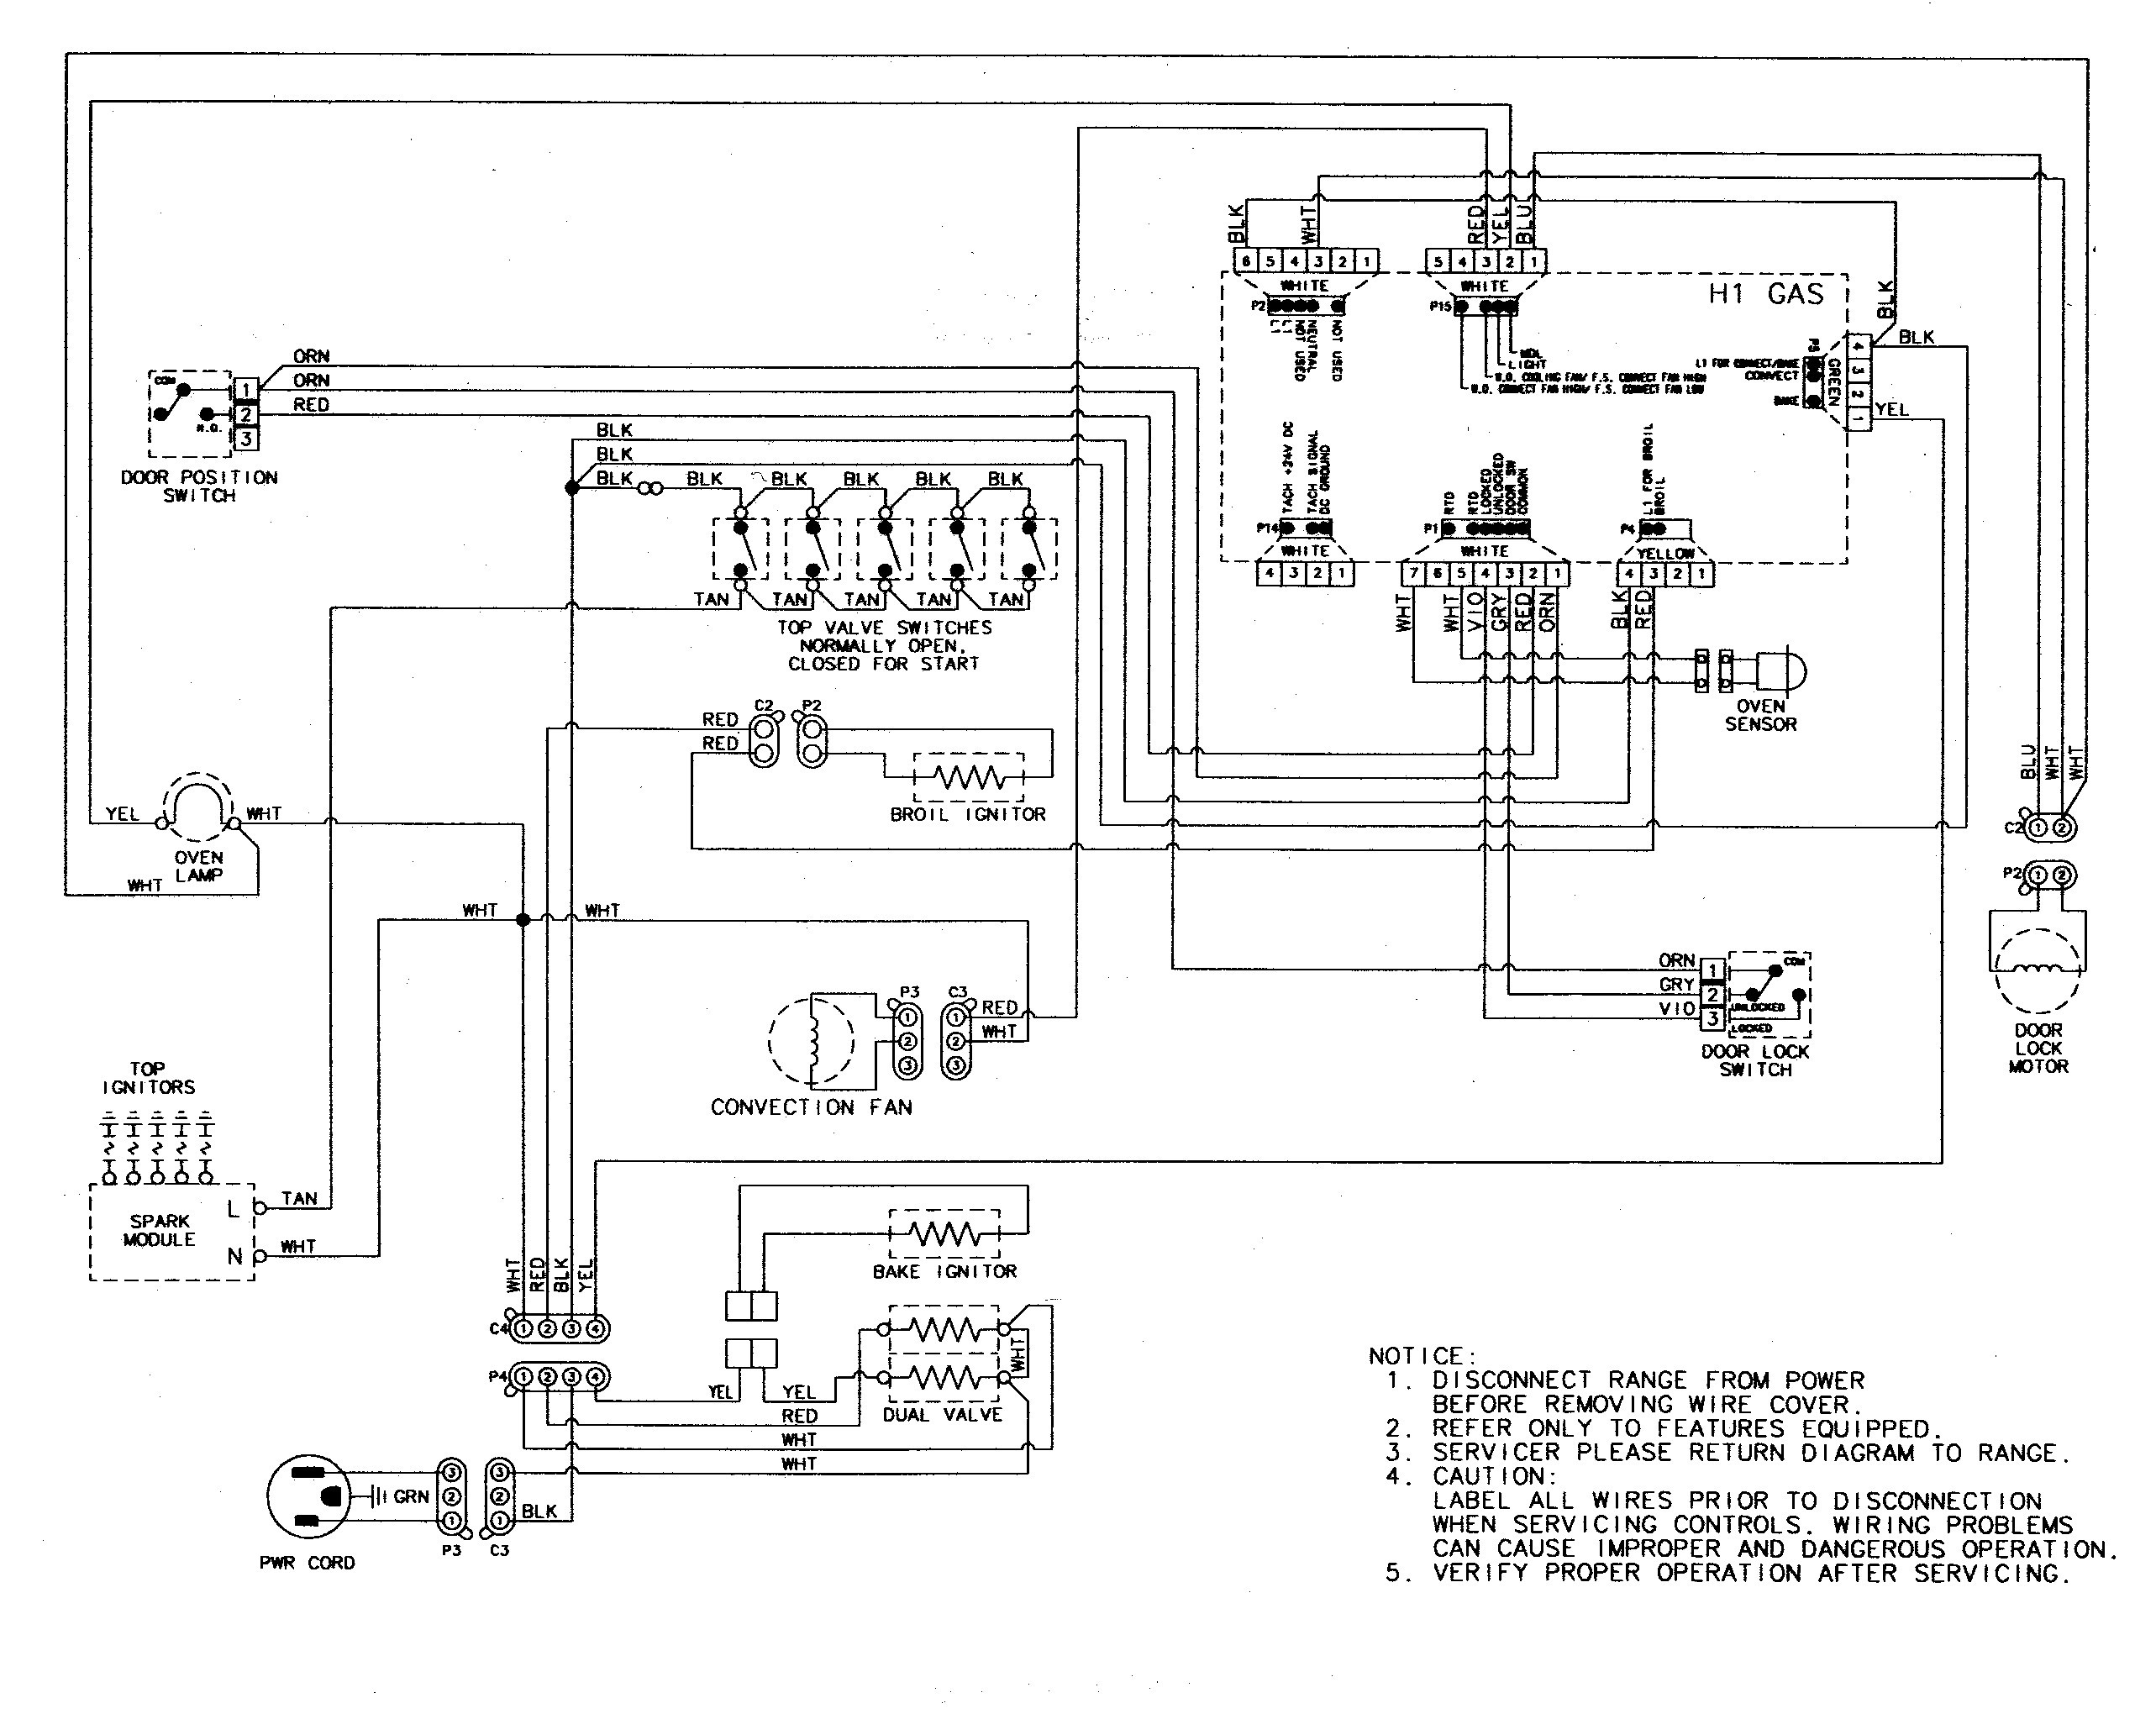 Camaro Wiring Diagrams Free on instrument cluster, chevy tail light,